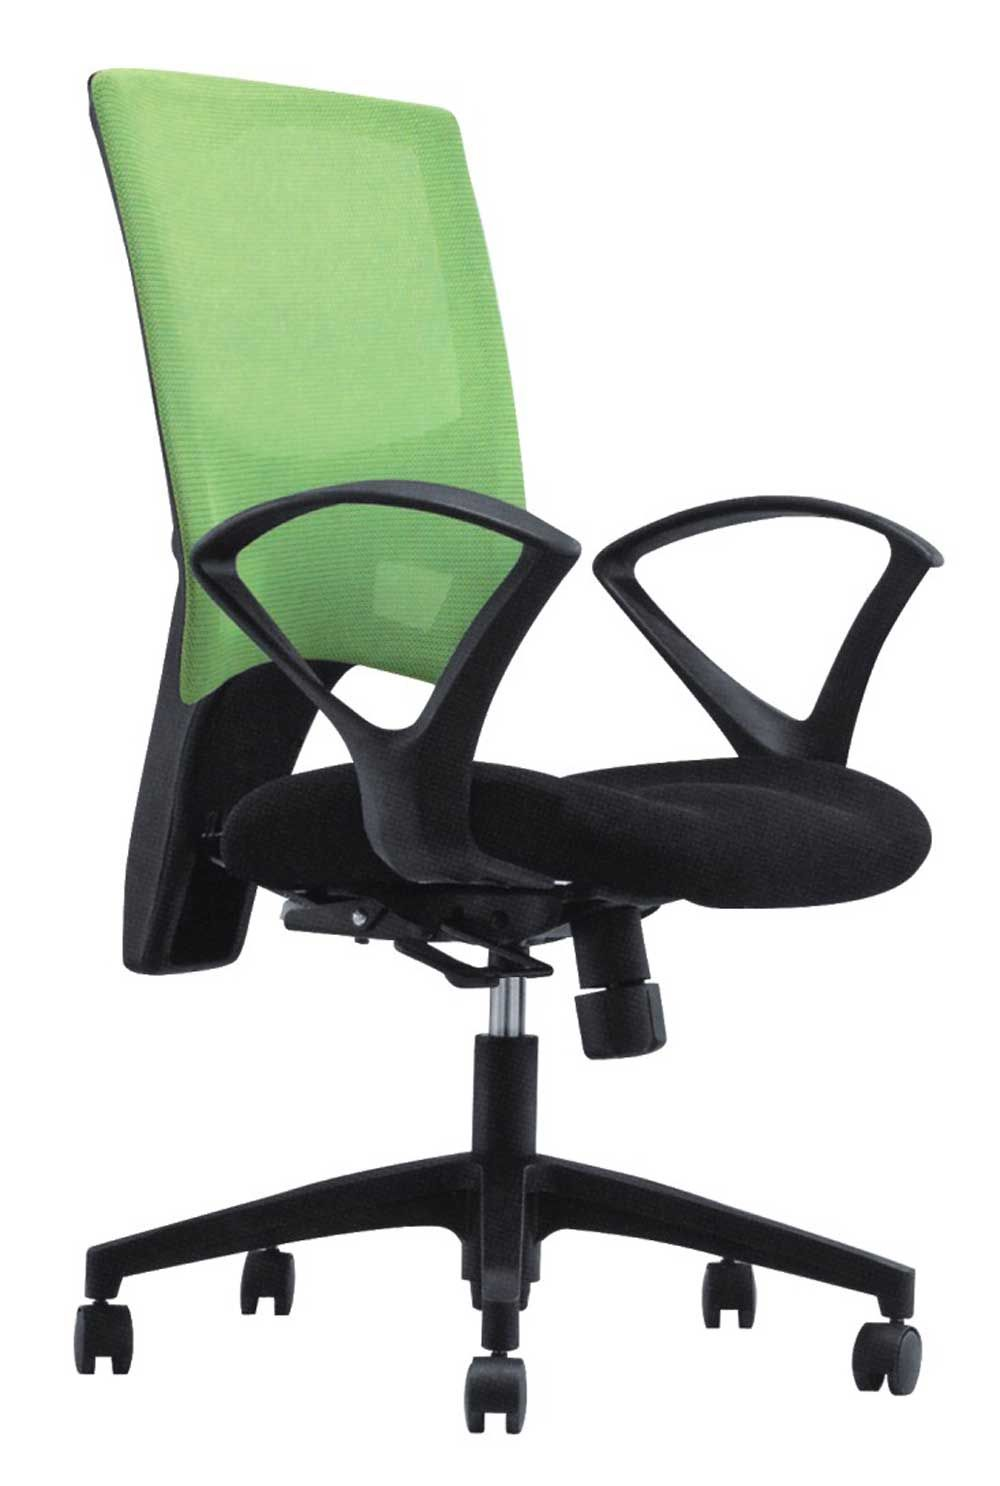 Unique Office Chair Design For Office With Images Office Chair